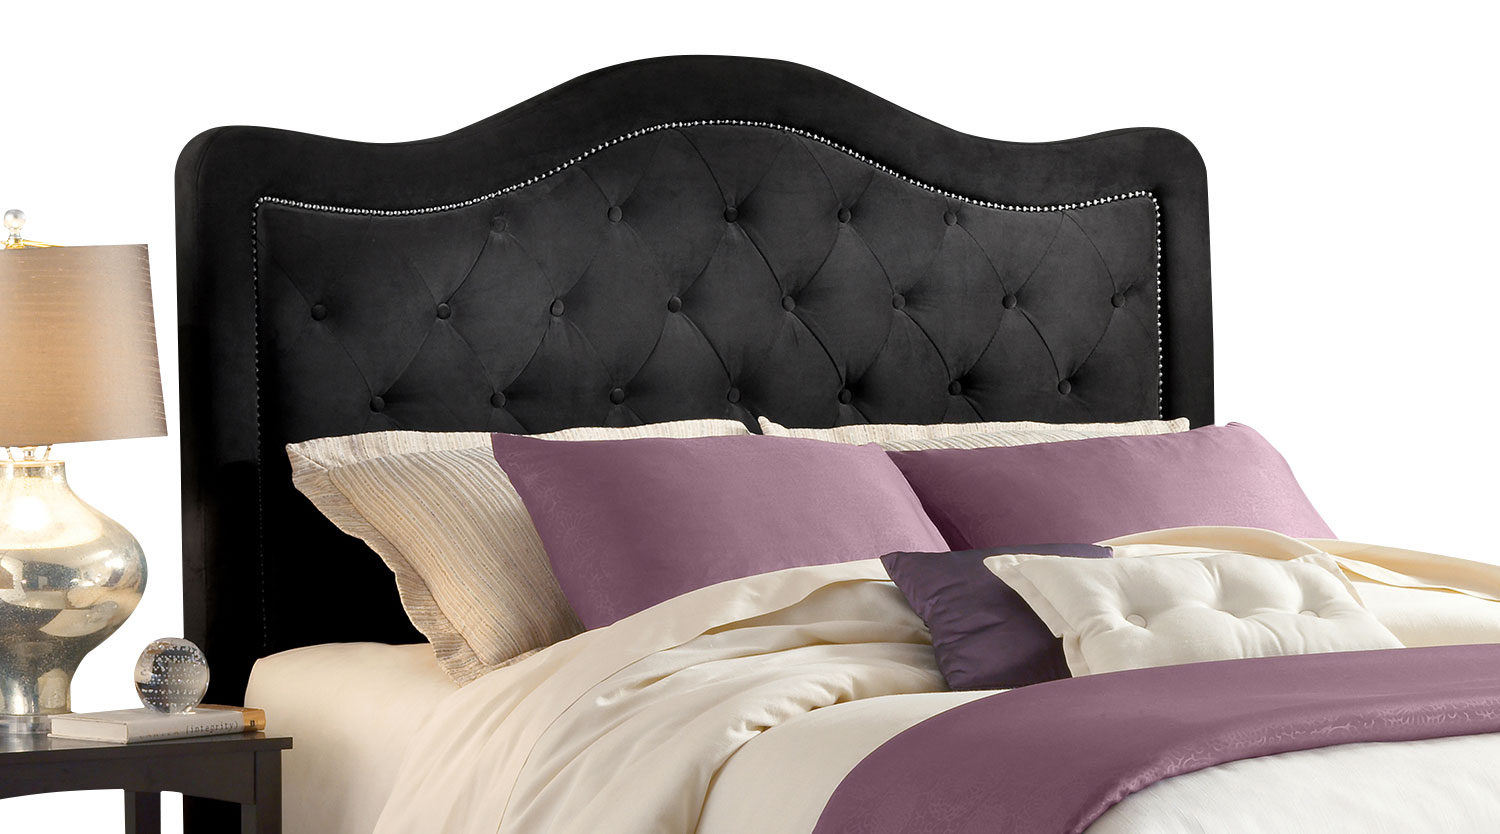 Bedroom Furniture - Tris Queen Headboard